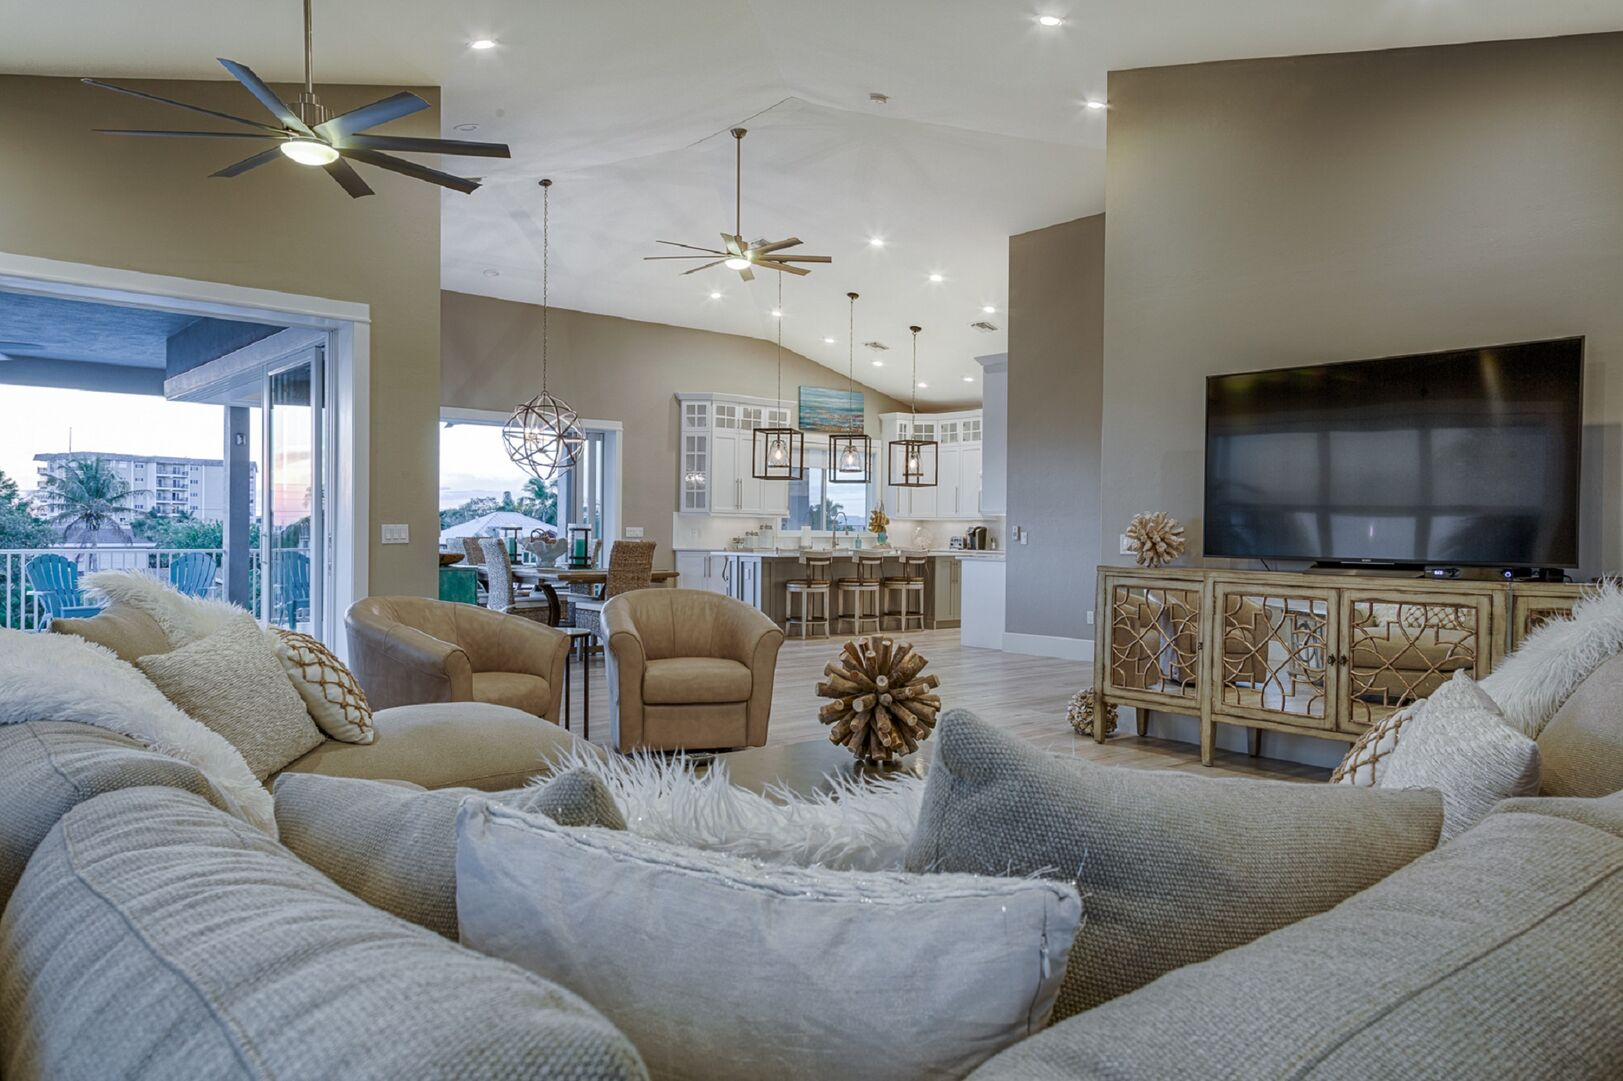 The living area of this vacation house for rent in Fort Myers FL, with a large sectional couch, TV on an entertainment center in front of it, and a view of the kitchen in the background.